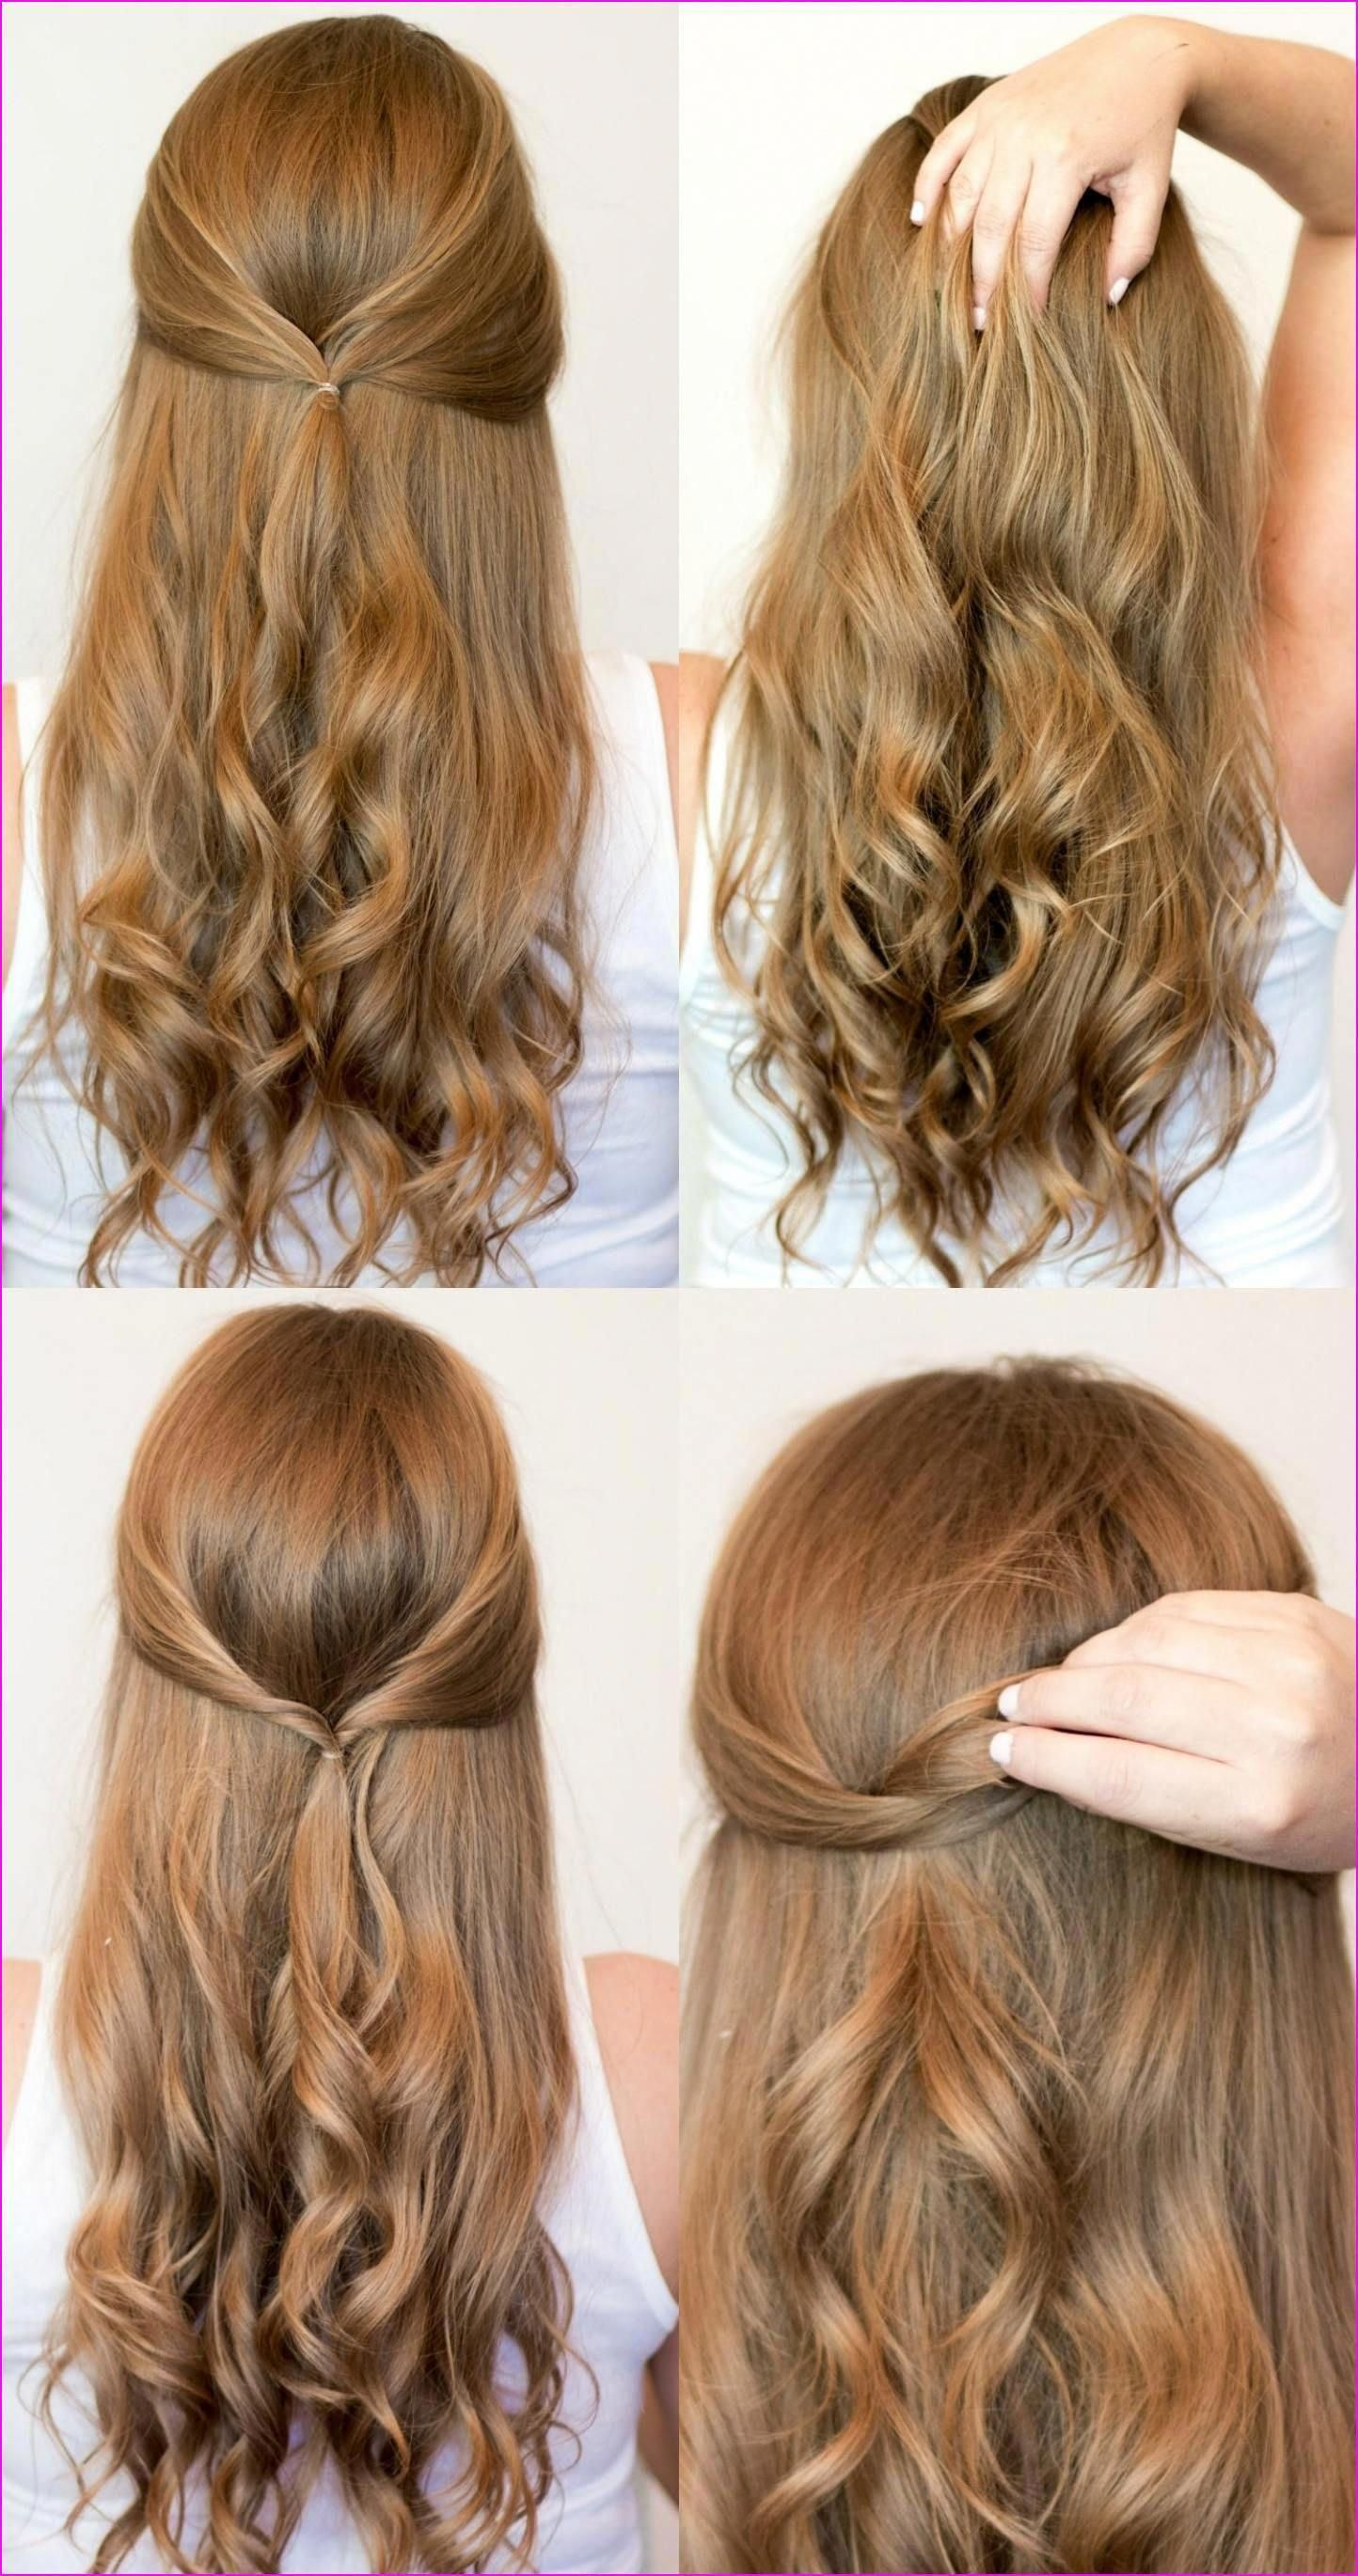 Easy Hairstyles For School Easyhairstylesforschool Easy Hairstyles Heatless Hairstyles Casual Hairstyles For Long Hair